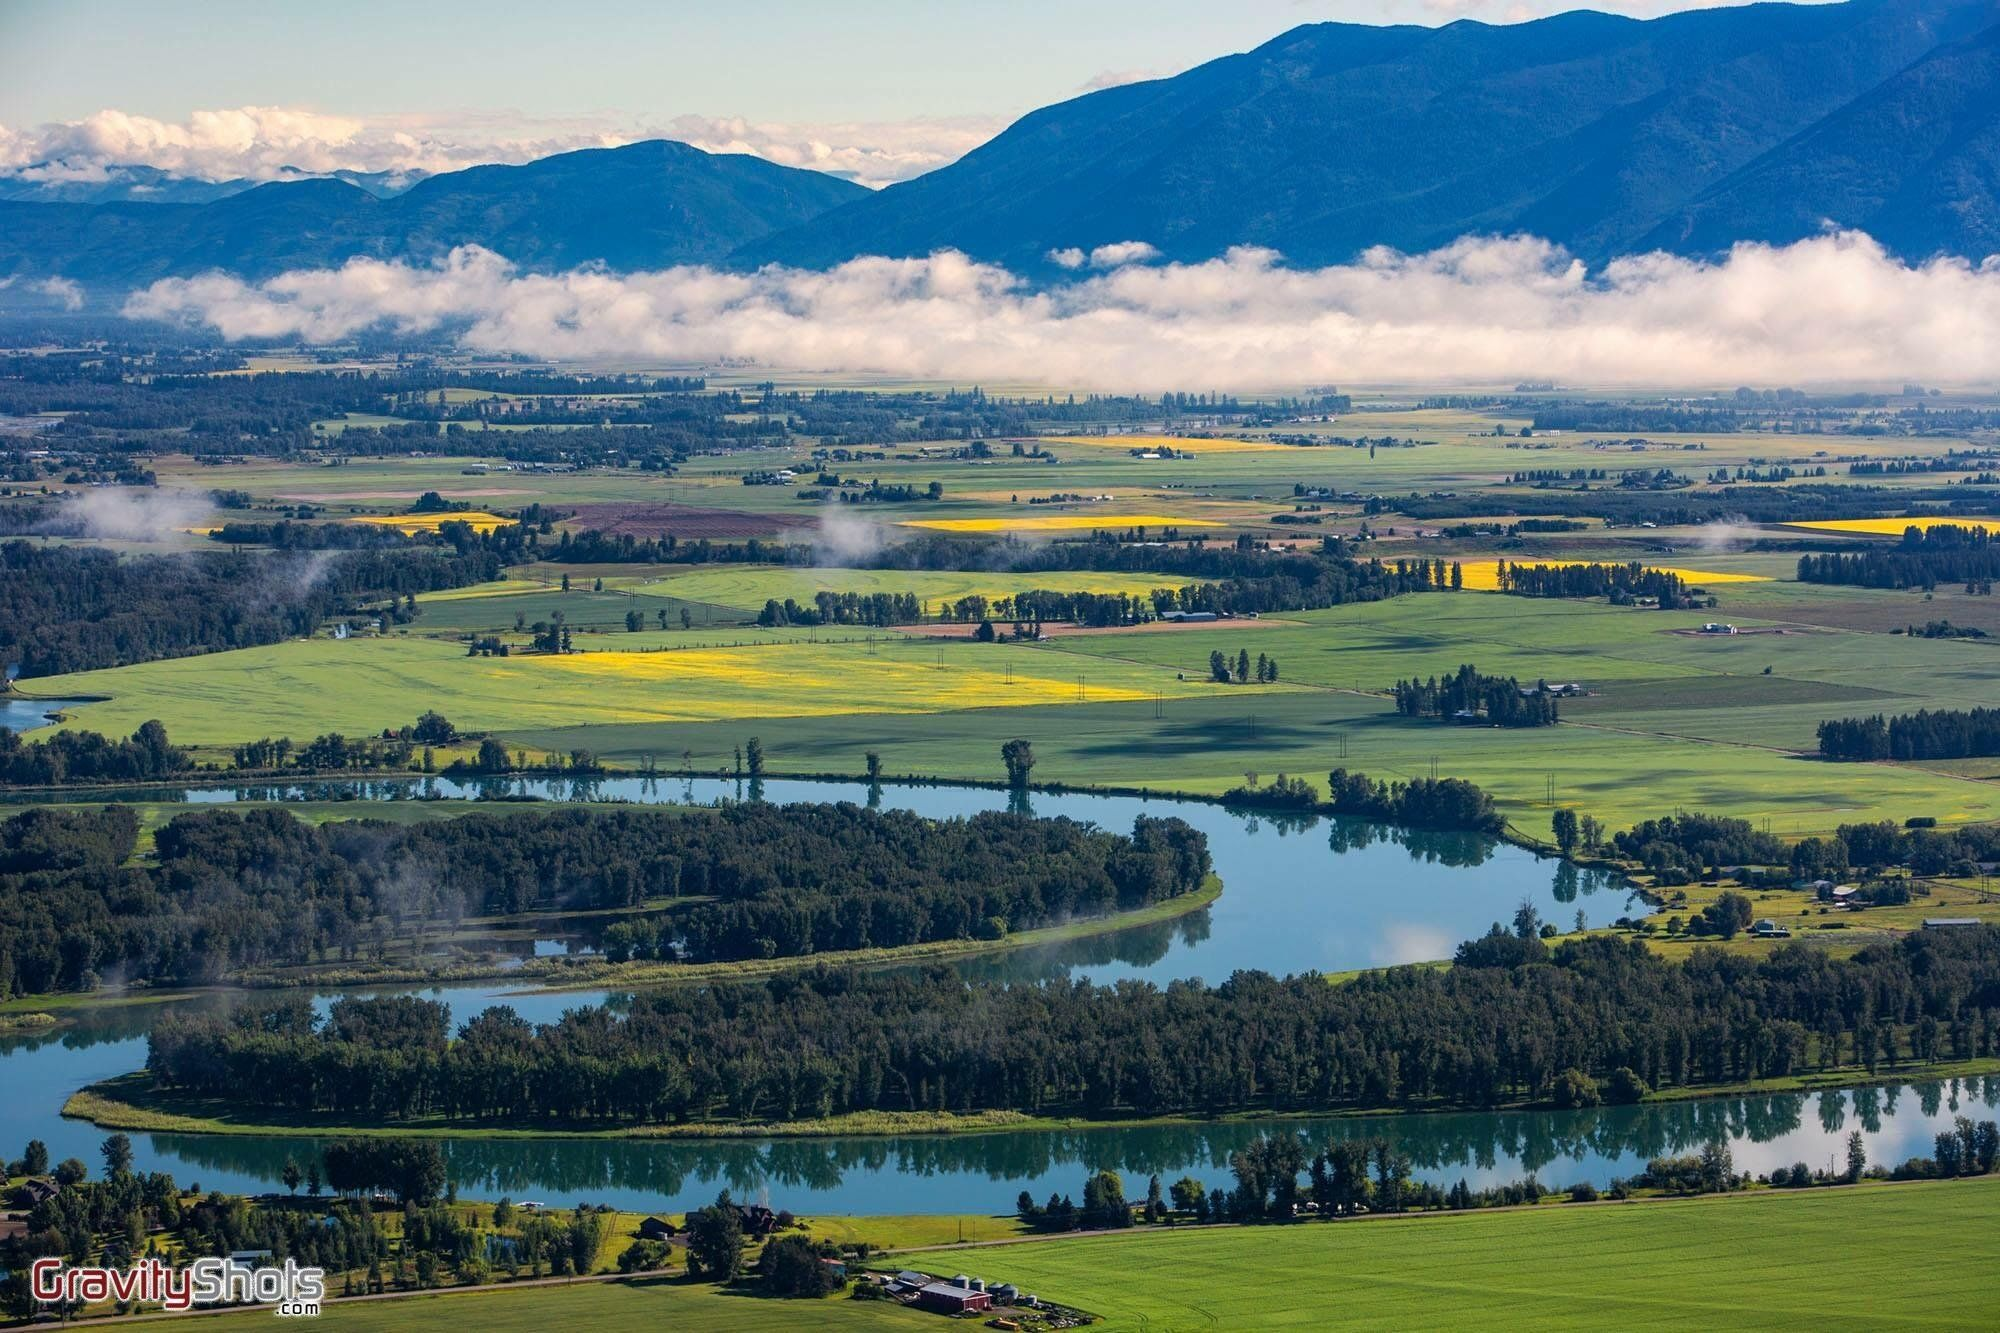 r/MostBeautiful - The Flathead River winding through the ...